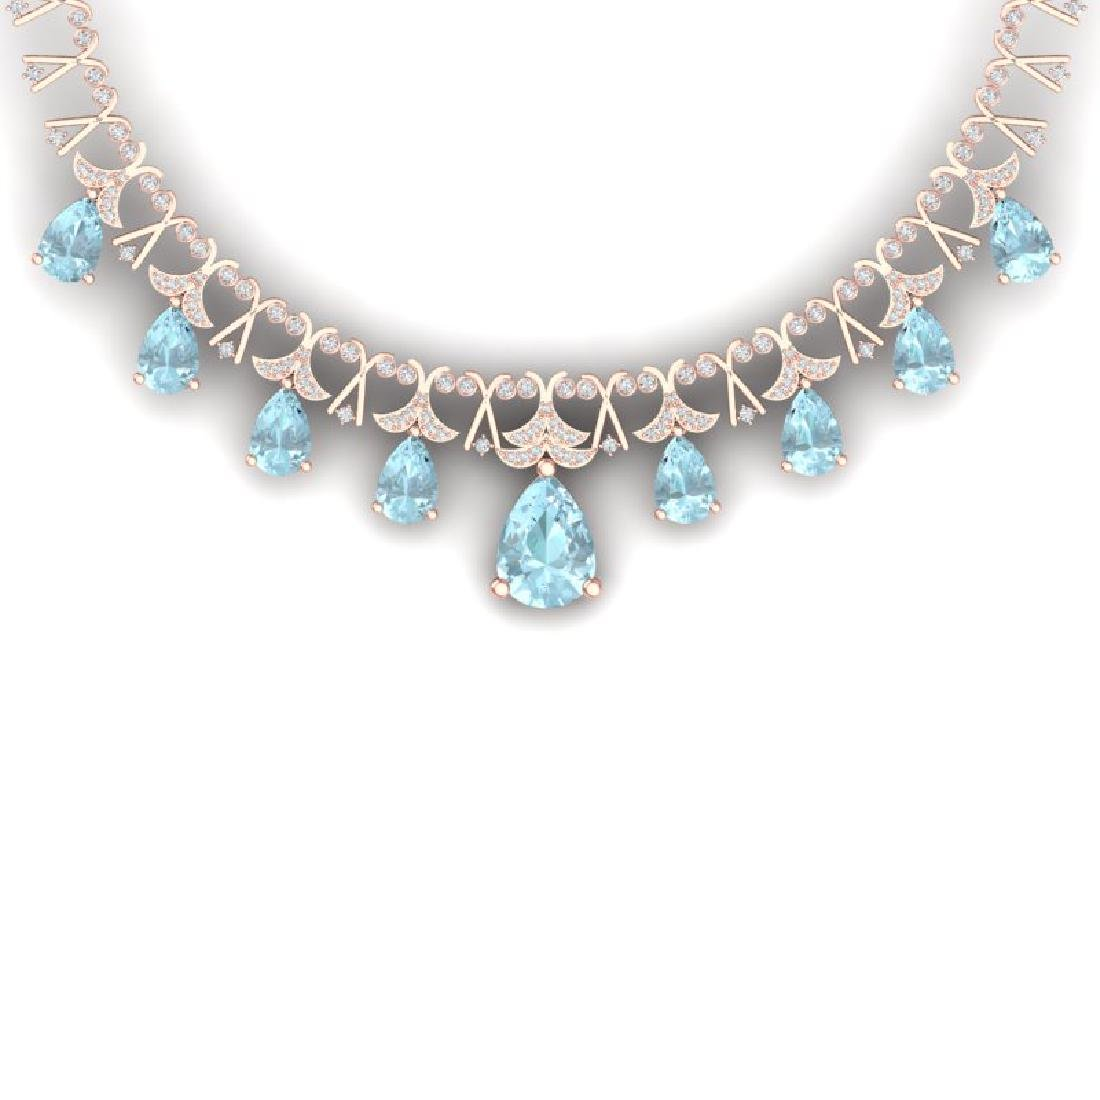 60.62 CTW Royalty Sky Topaz & VS Diamond Necklace 18K